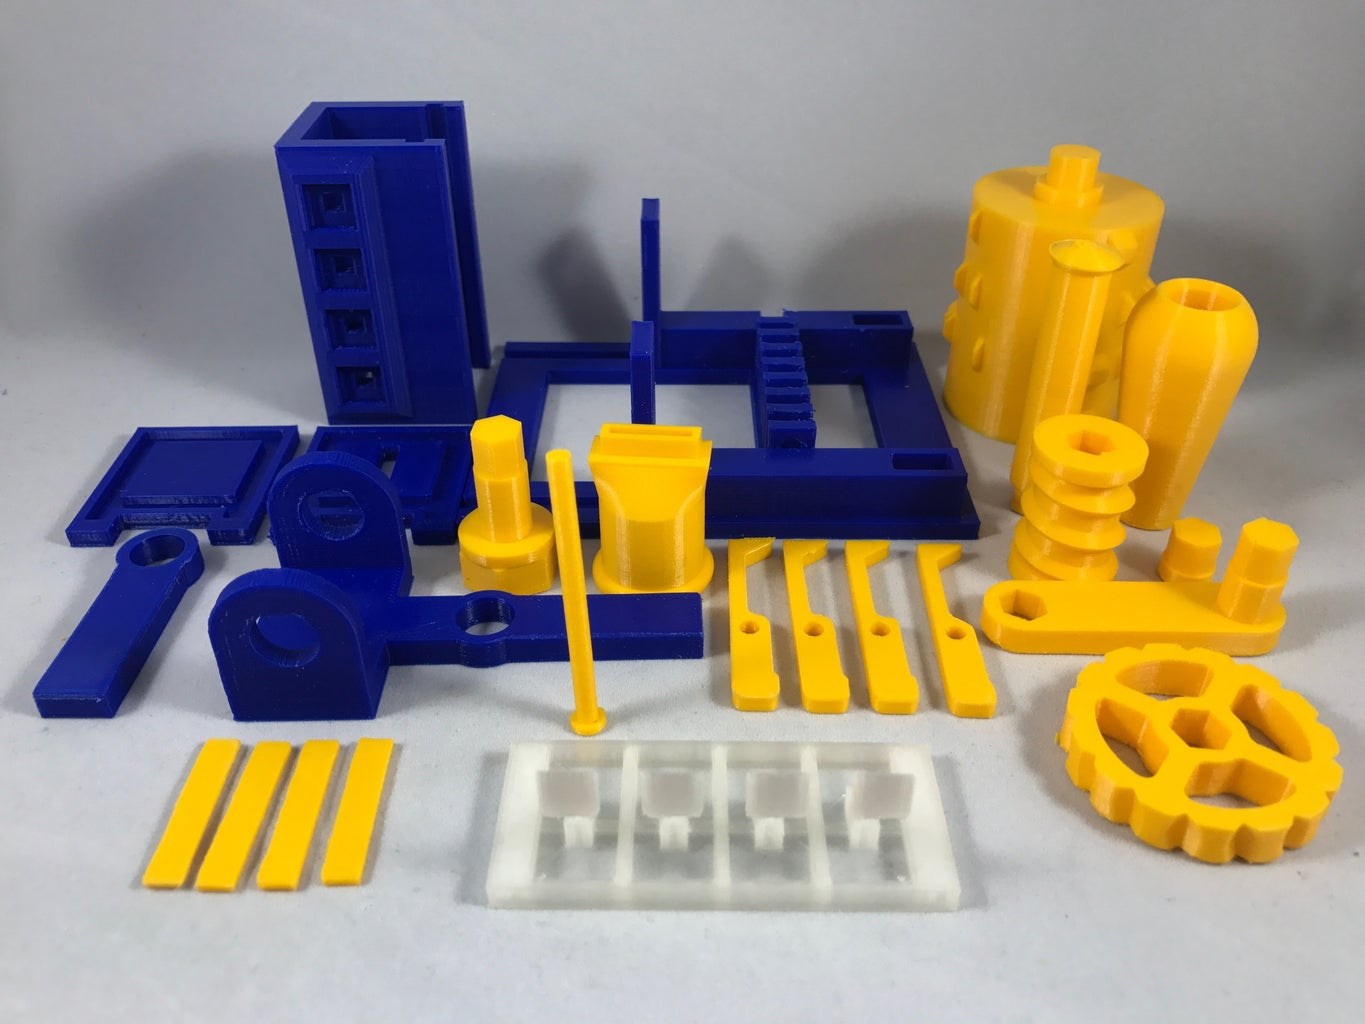 Purchase, Print and Prepare the Parts.